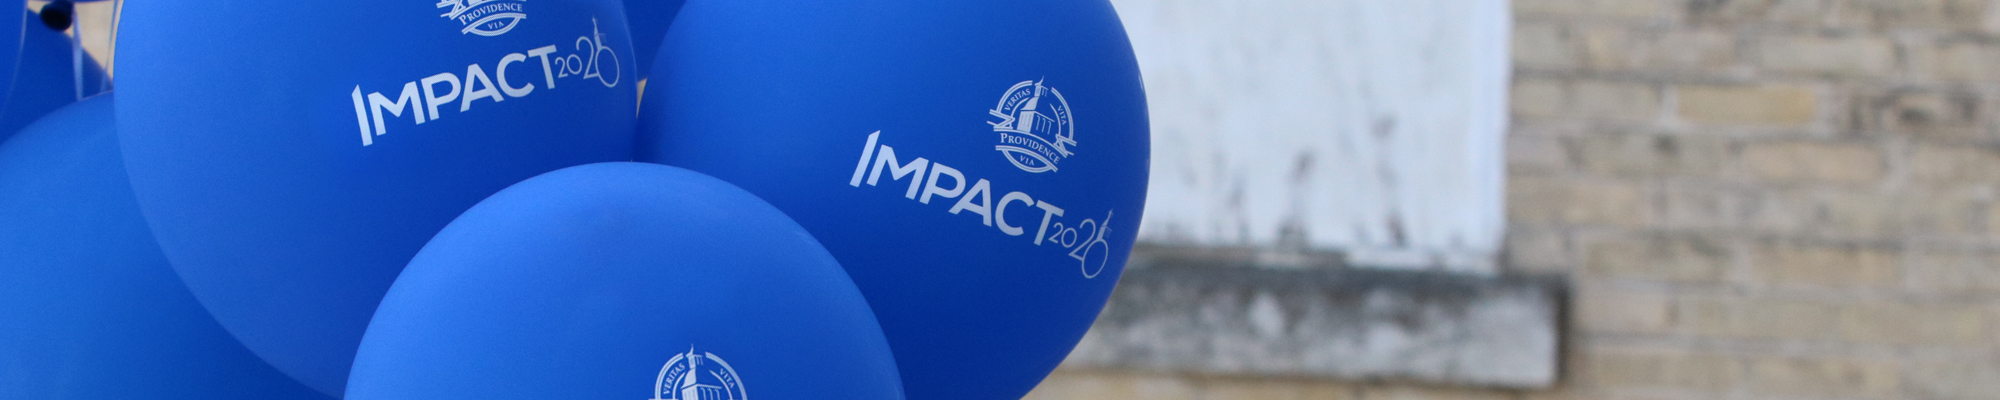 IMPACT 2020 campaign goal boosted to $16.5 million Image